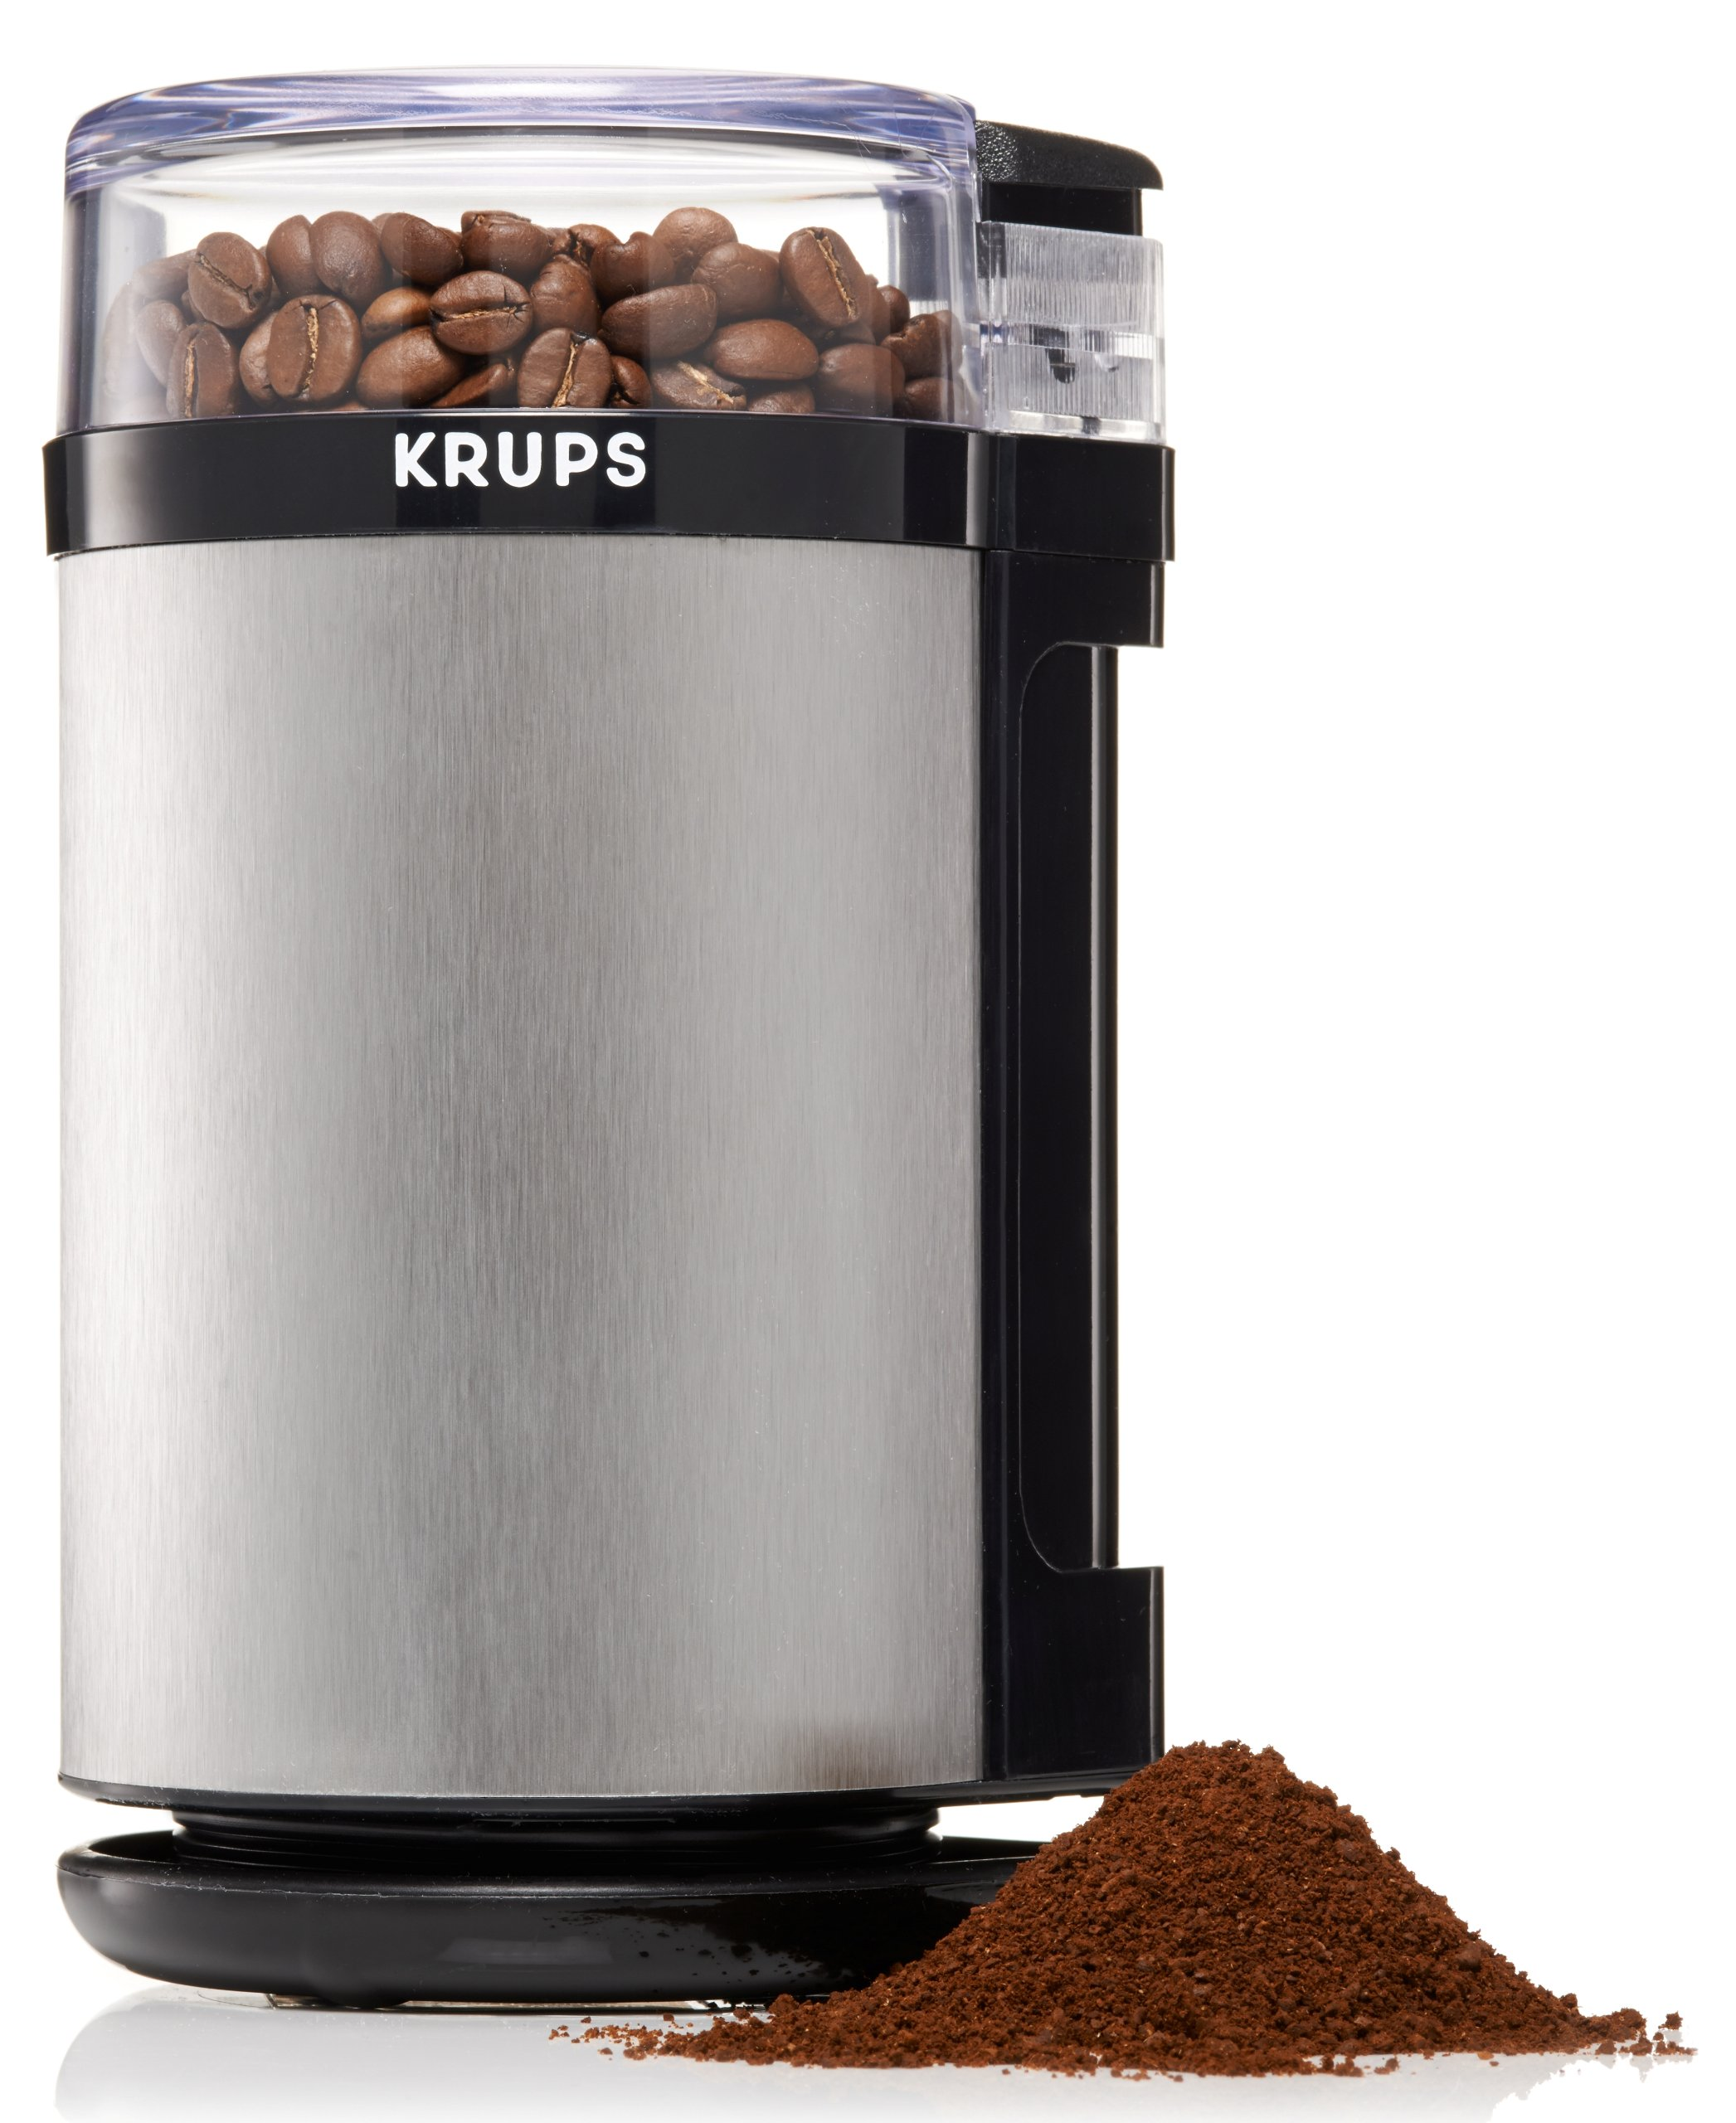 KRUPS GX4100 Electric Spice Herbs and Coffee Grinder with Stainless Steel Blades and Housing, 3-Ounce, Gray by KRUPS